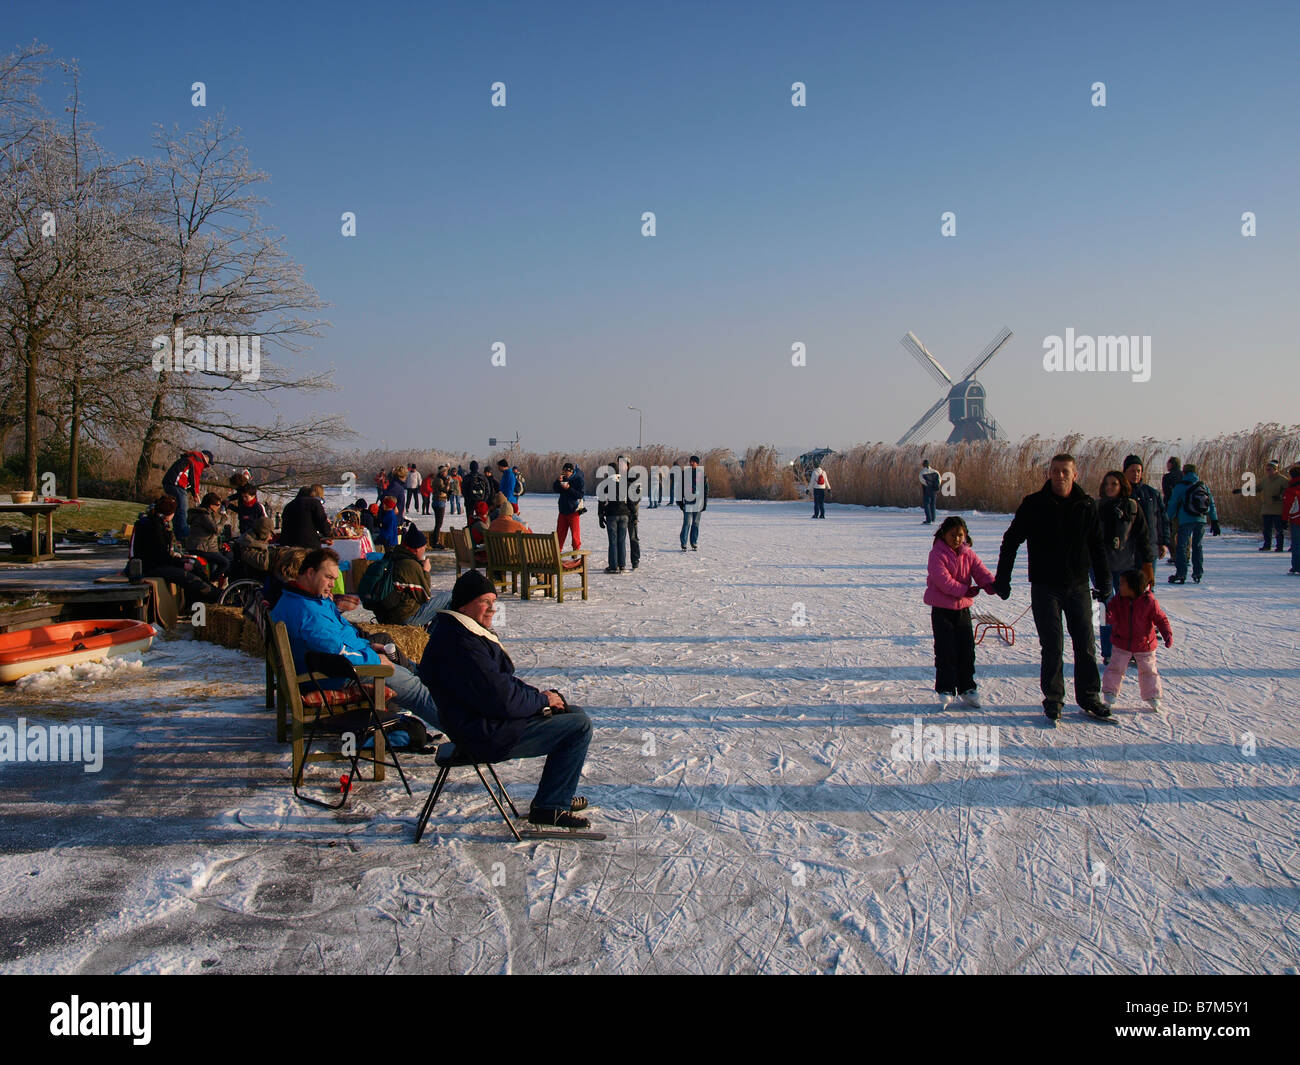 Many people skating and resting on the ice near Oud Alblas Zuid Holland the Netherlands - Stock Image